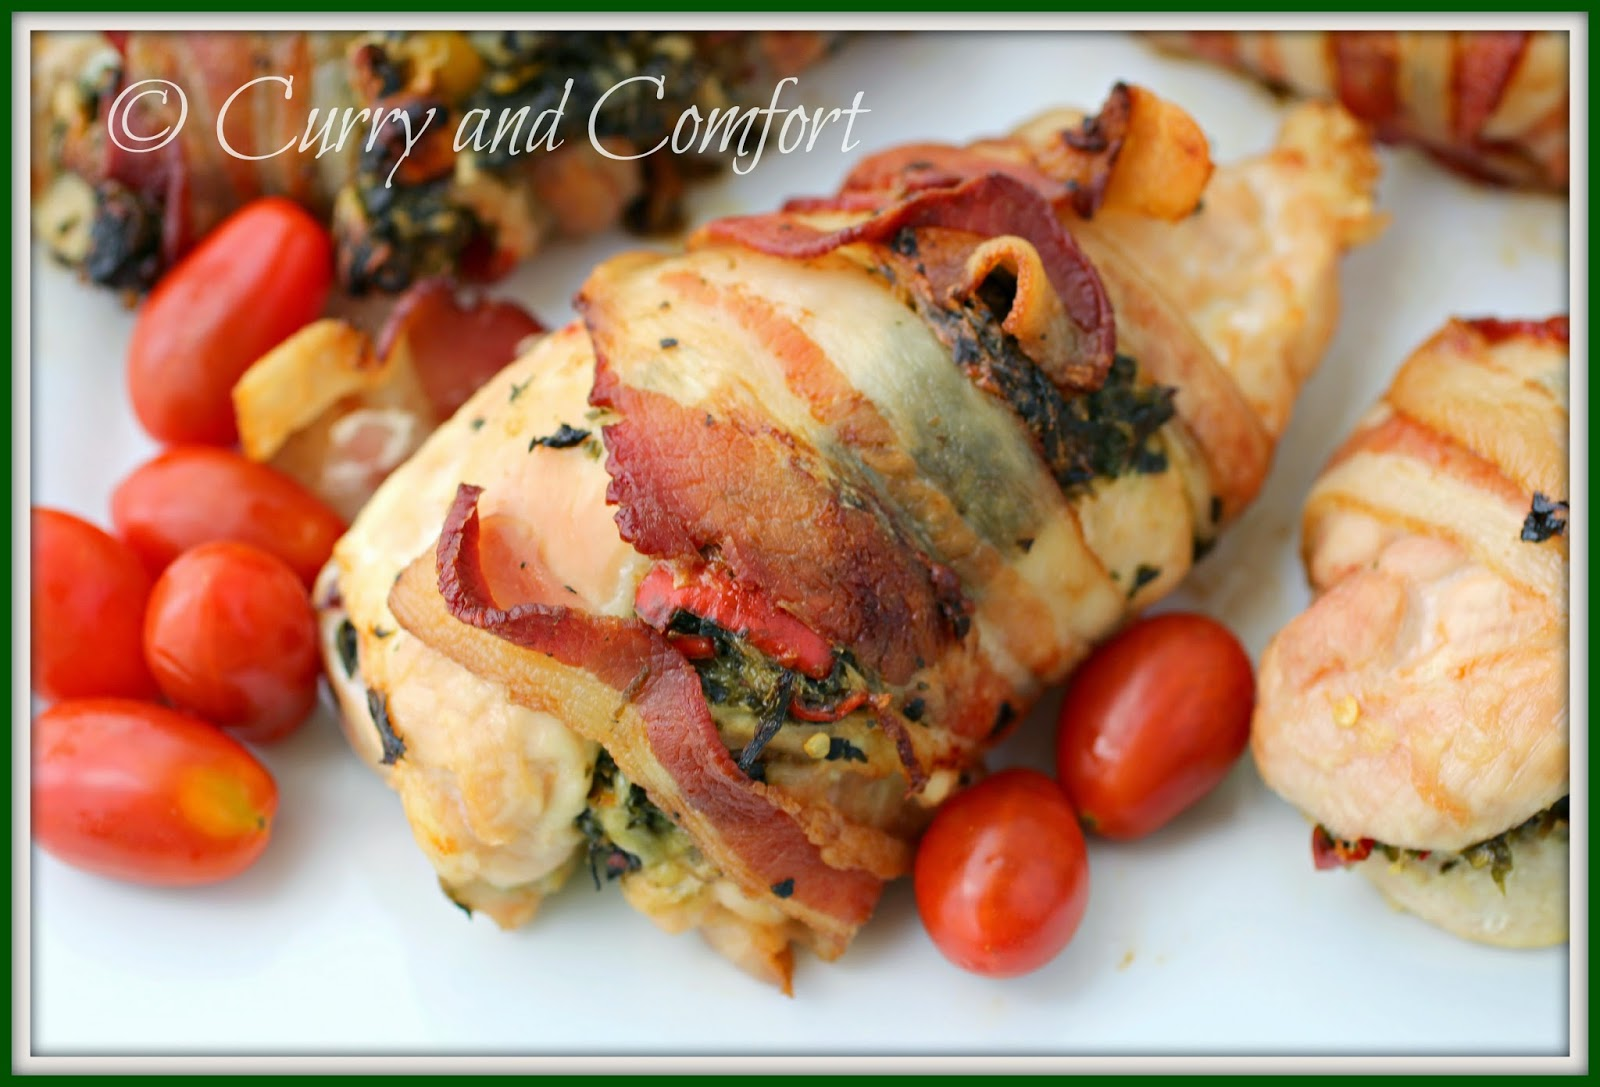 Curry and Comfort: Spinach and Feta Stuffed Chicken wrapped in Bacon